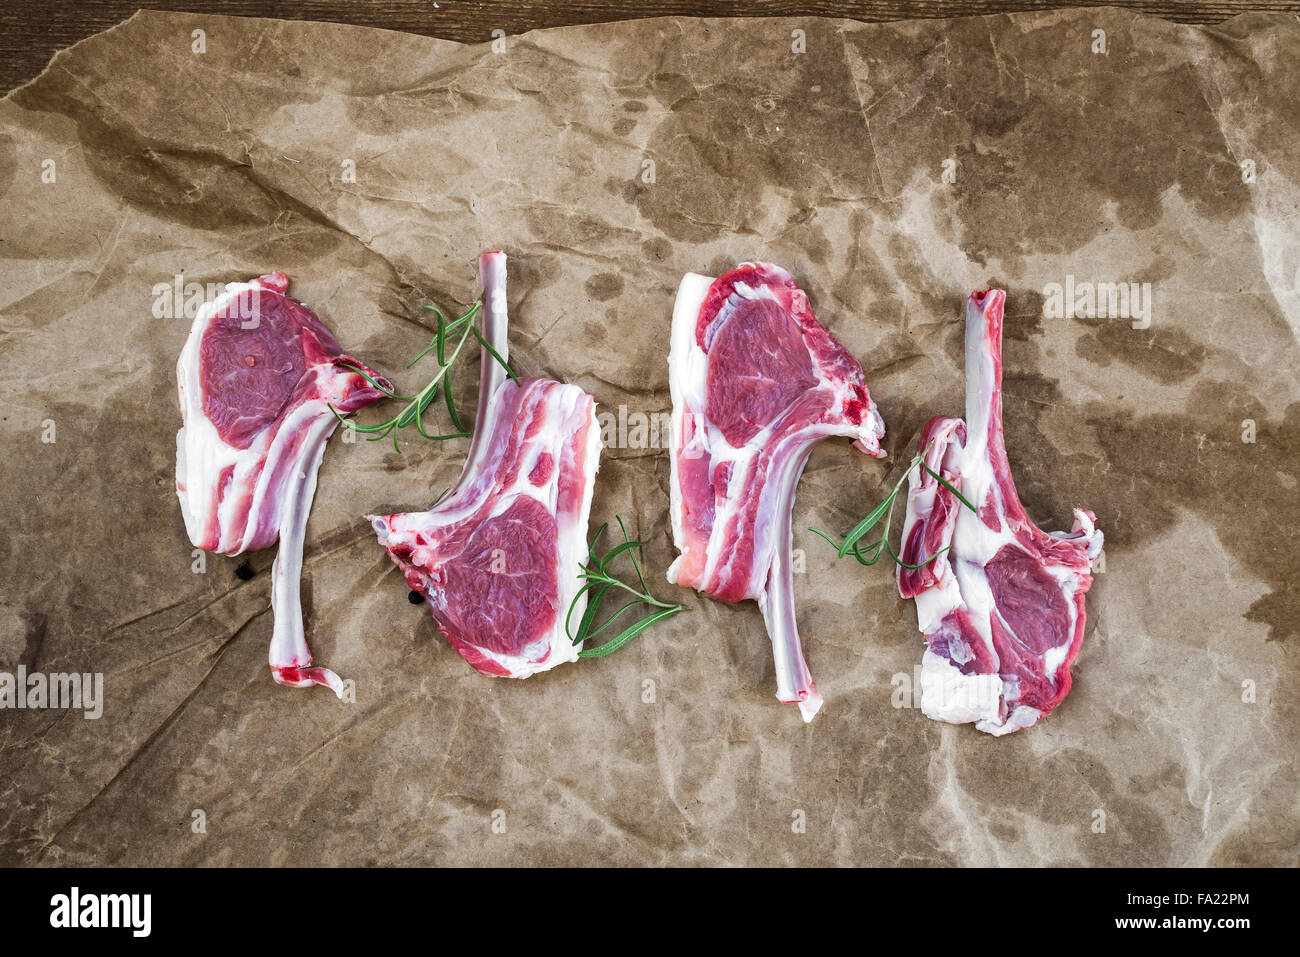 Raw lamb chops. Rack of Lamb with rosemary and spices over oily craft paper background, top view - Stock Image